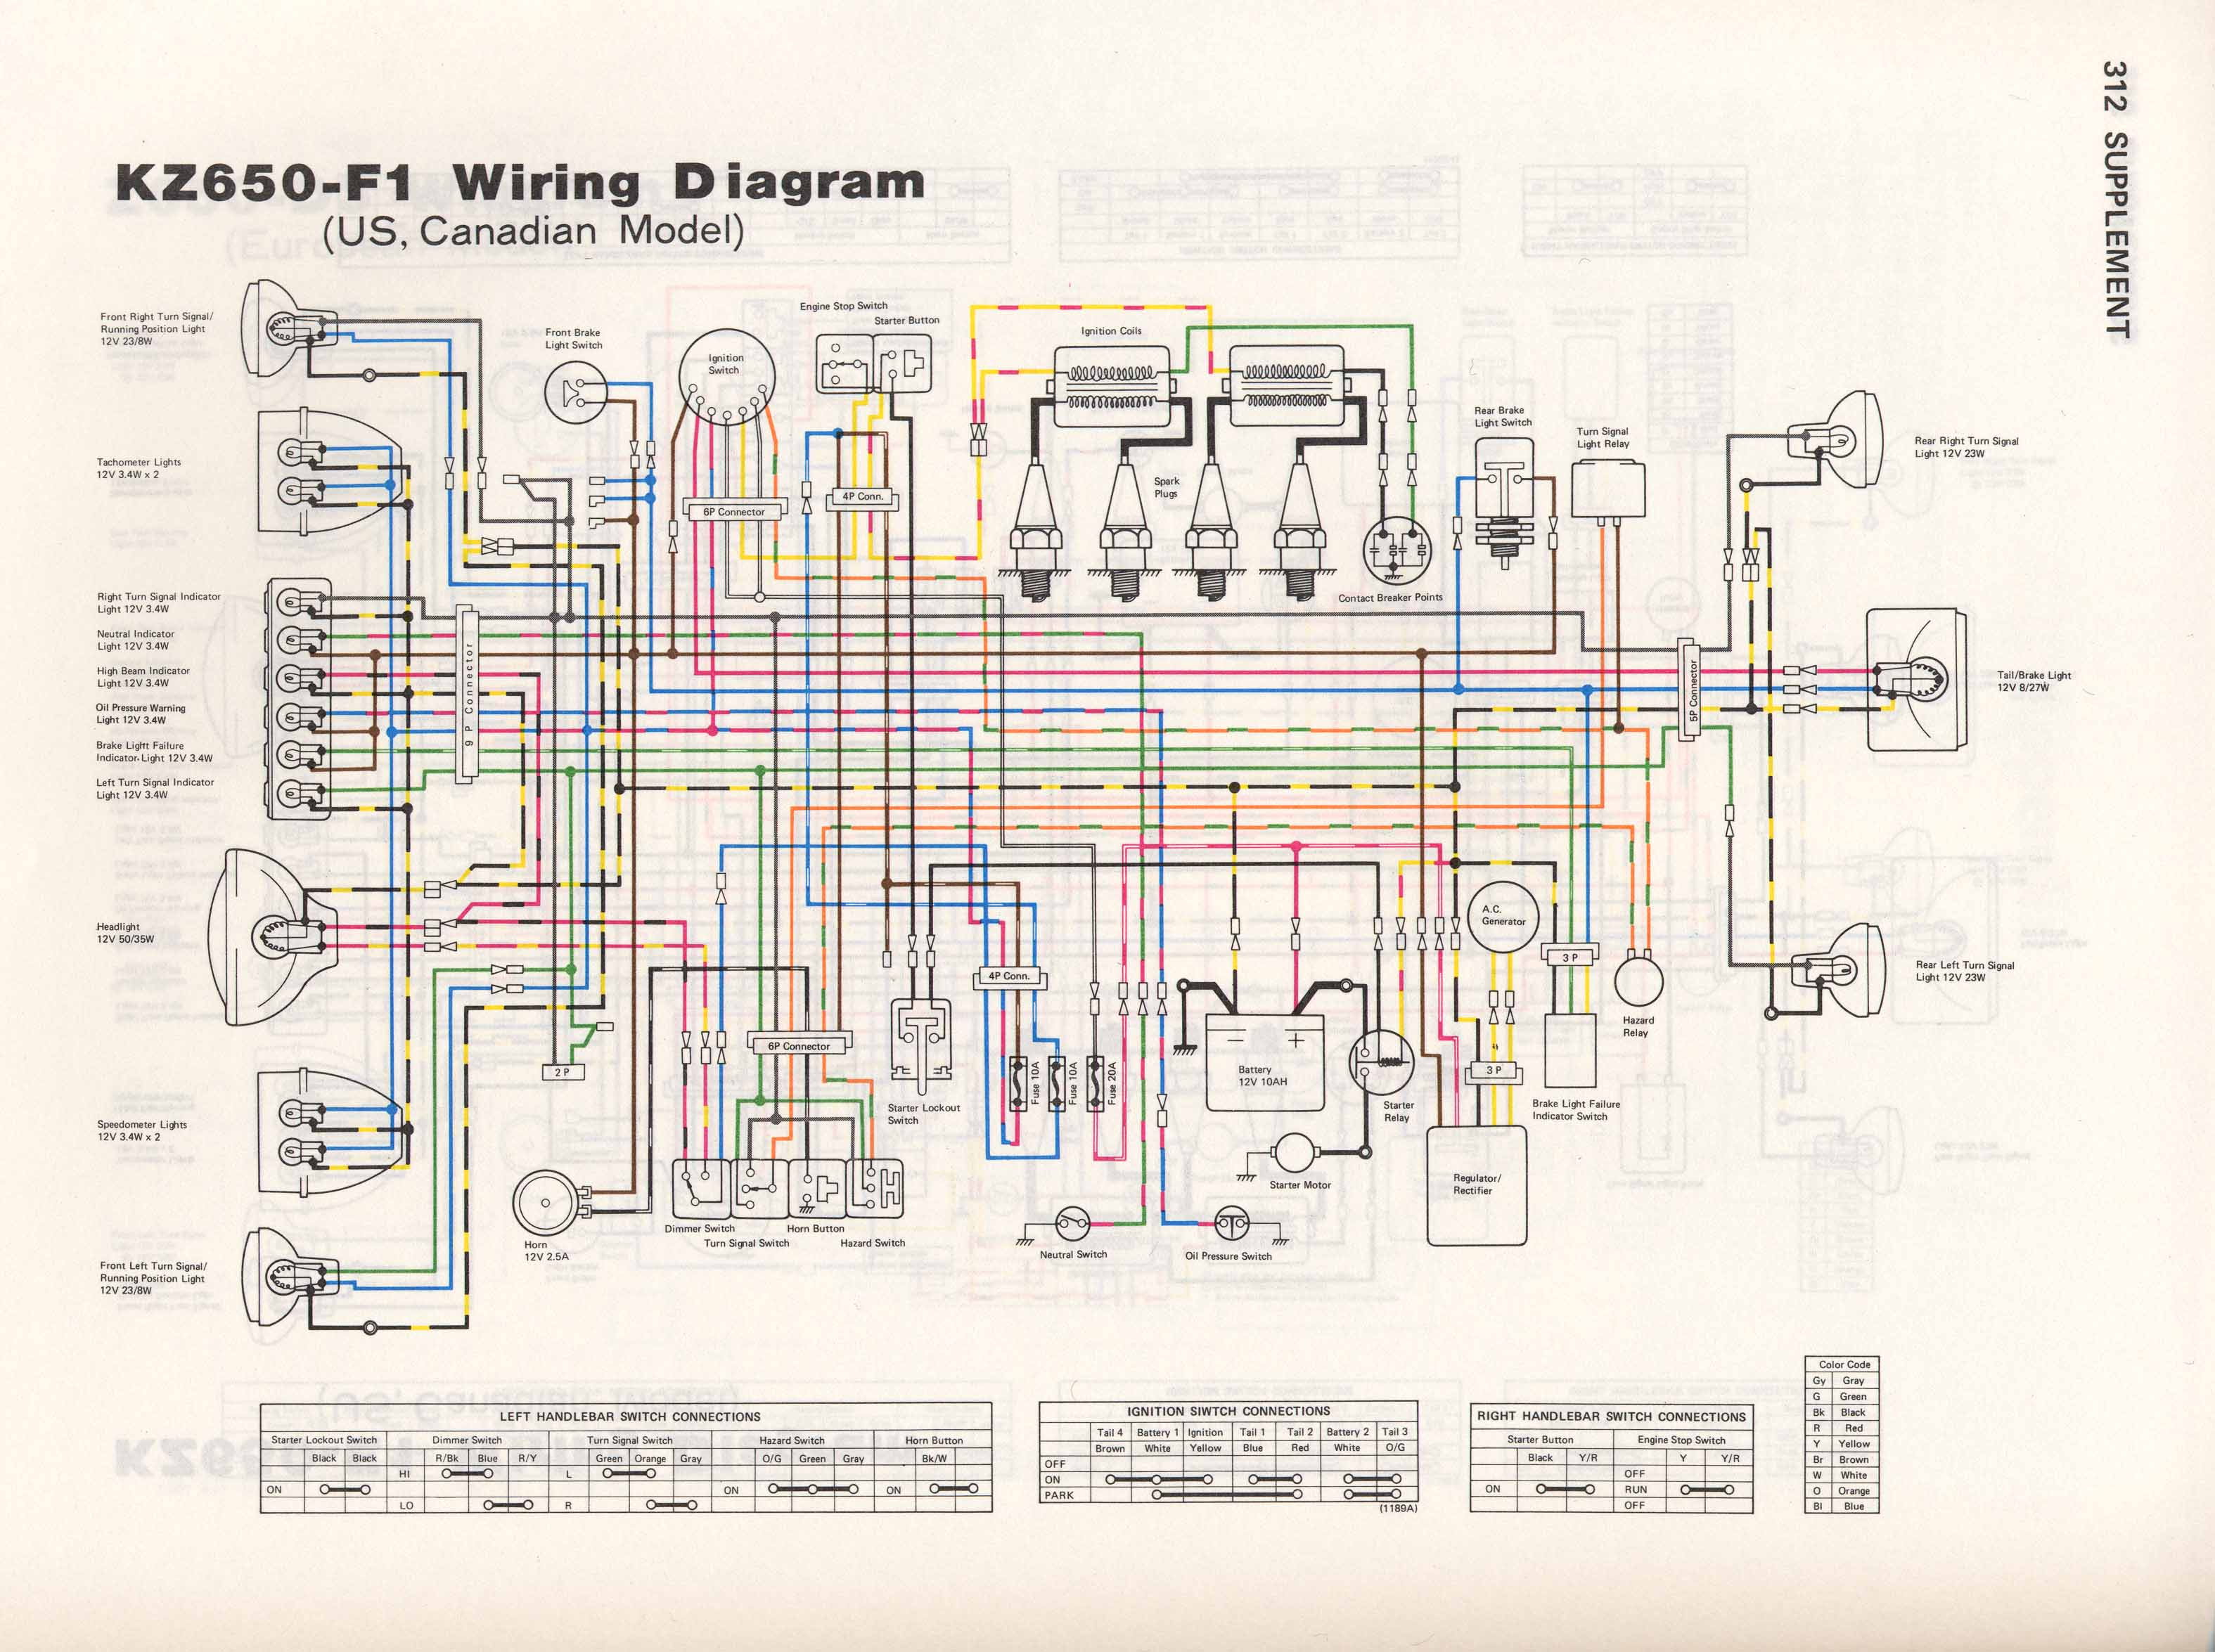 Kz650info Wiring Diagrams Electrical Diagram Kz650 F1